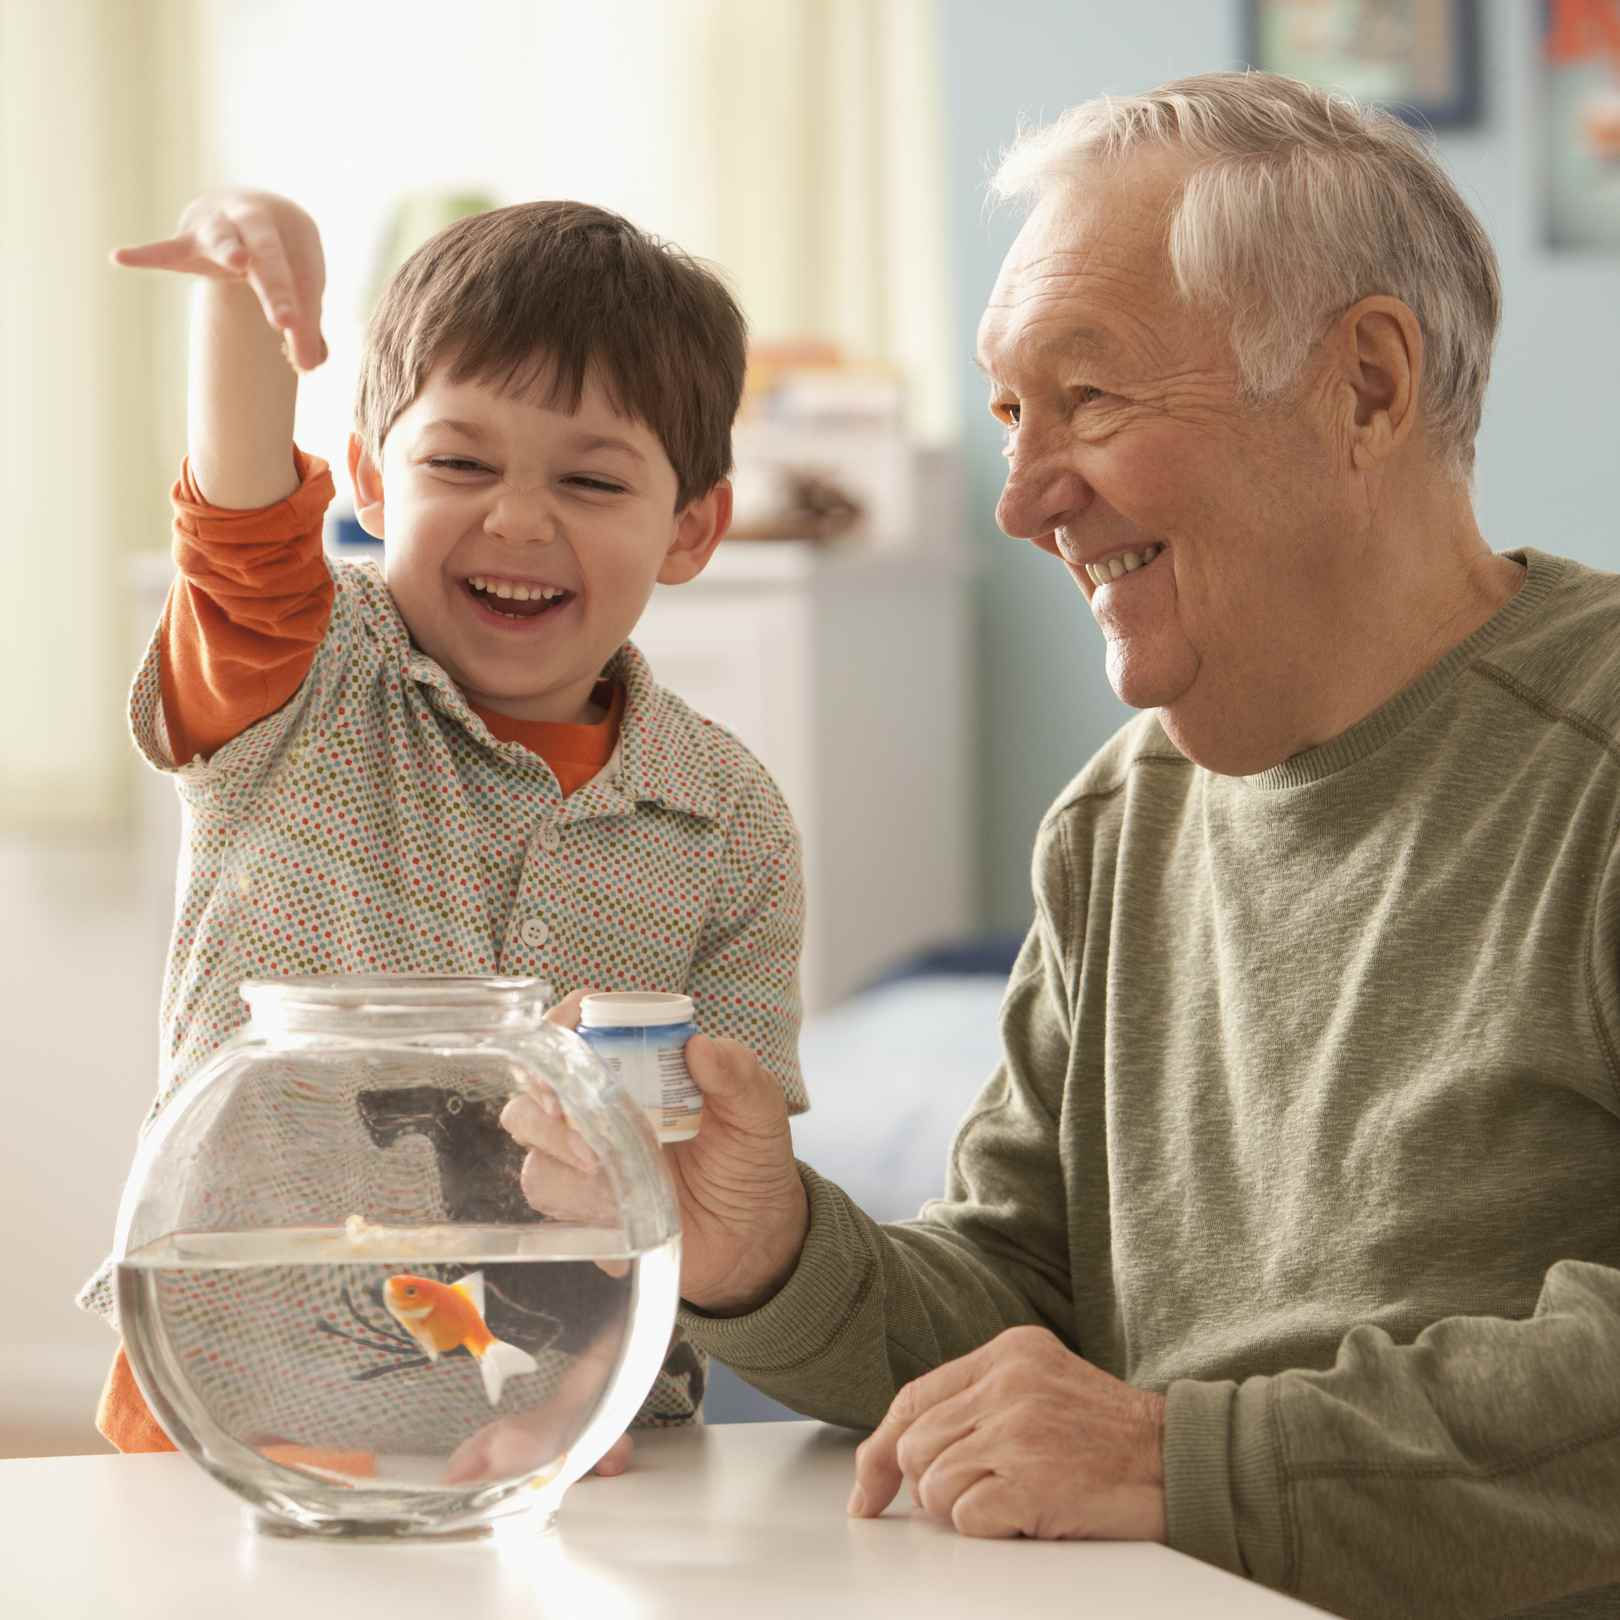 Goldfish being fed by a male child and male senior